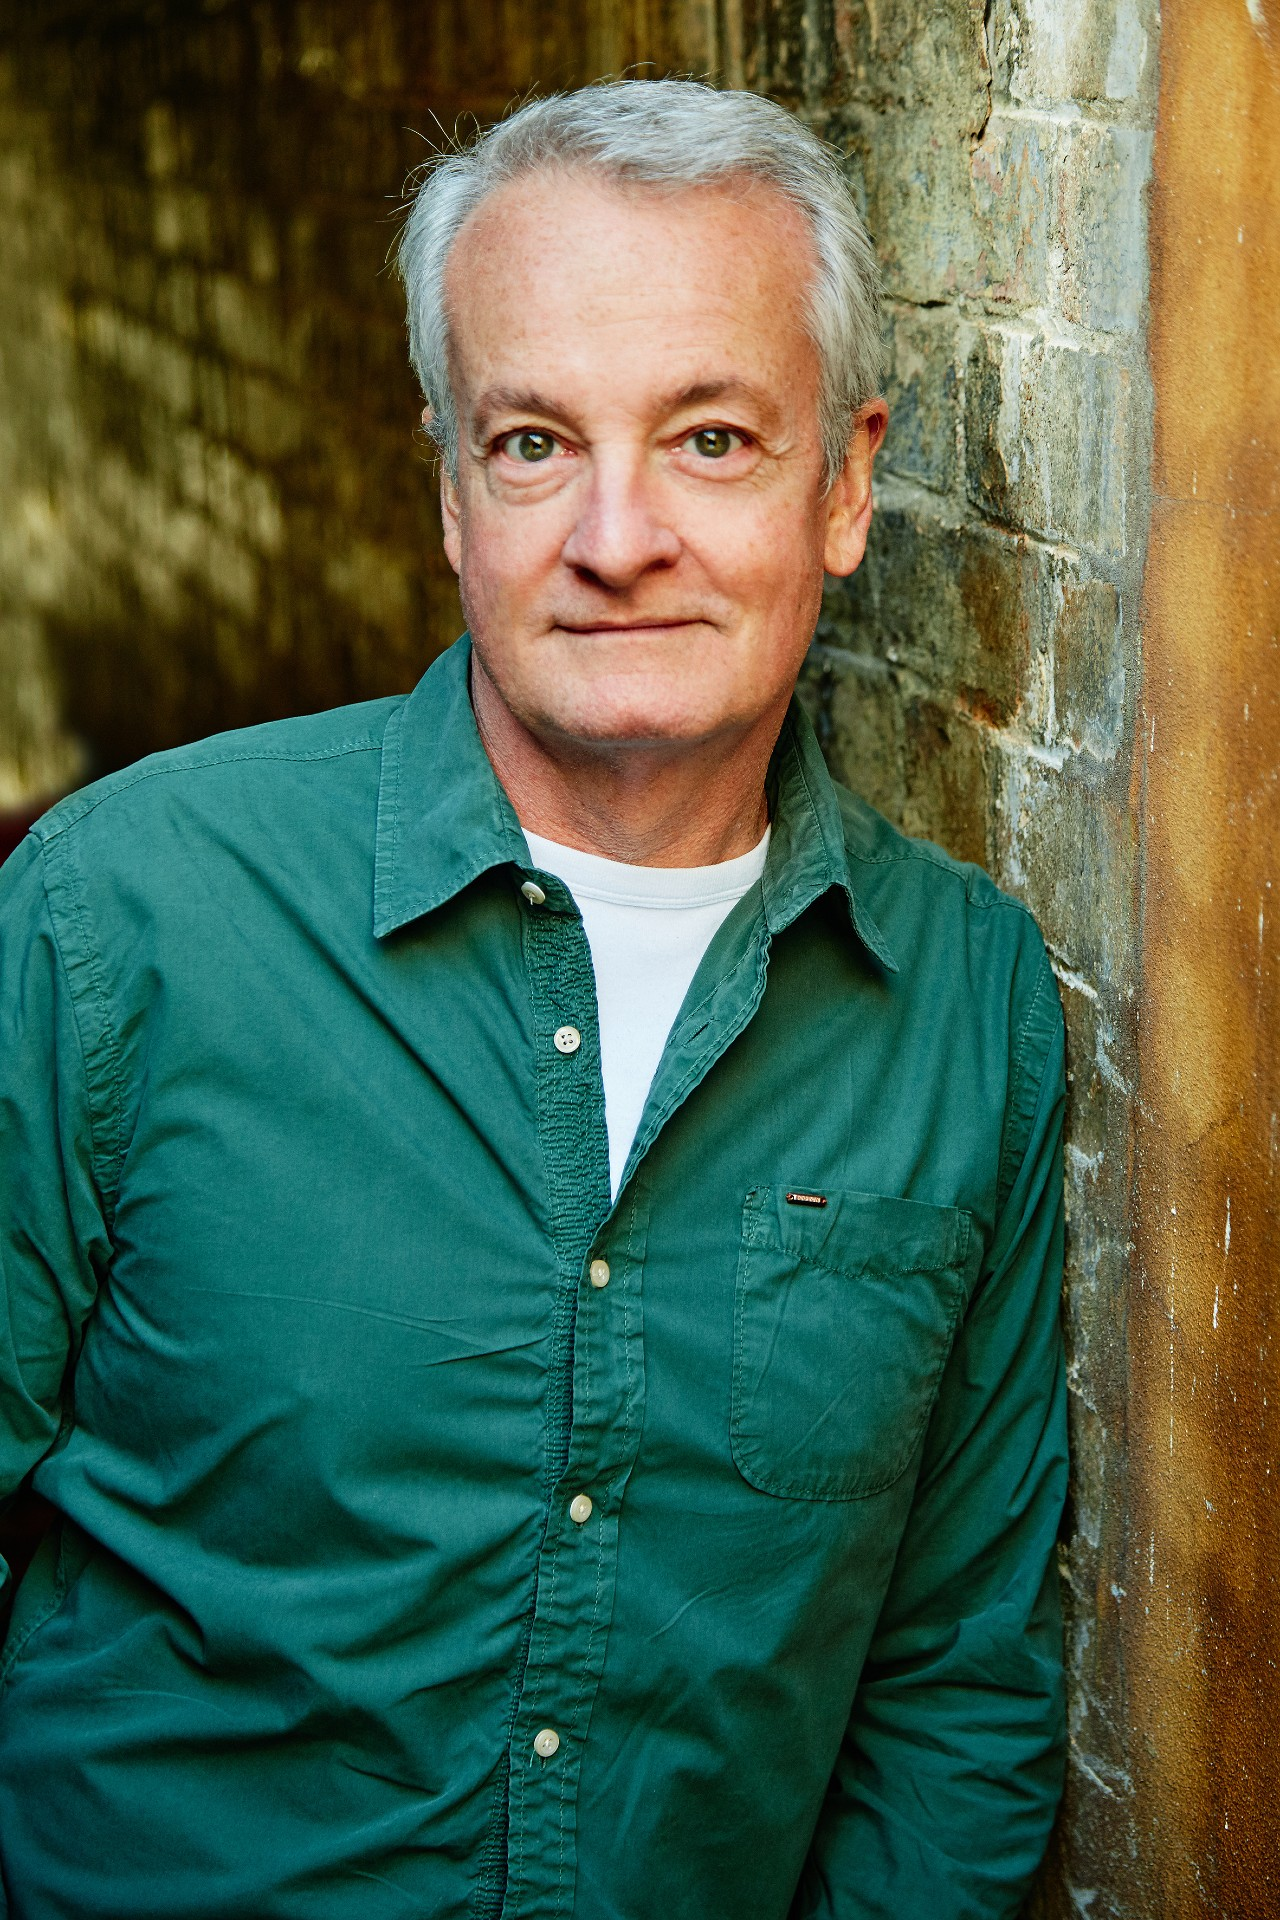 A 60-something man looks into the camera. He's leaning against a brick wall, while wearing a dark green button-up shirt